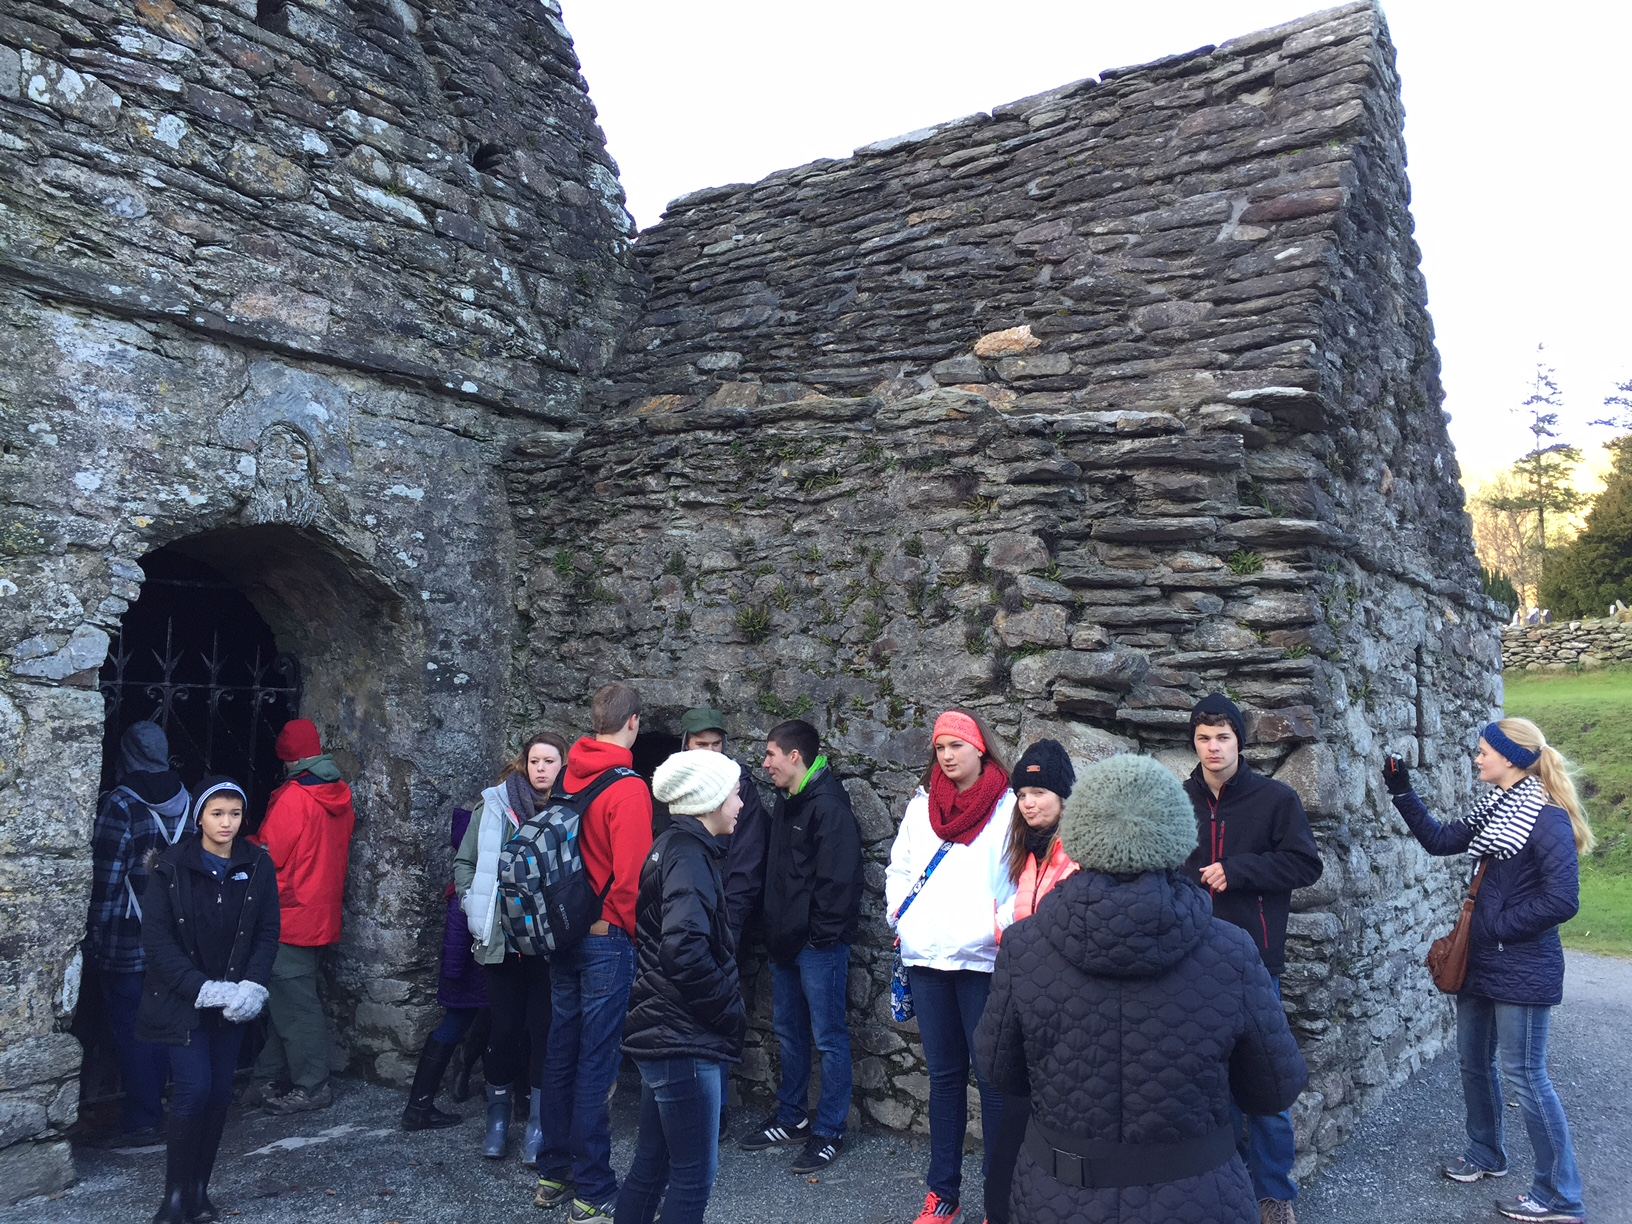 Experts in customized itineraries for tour groups in Ireland. The best group vacations Irish Culture & Heritage, Language, Academic, Alumni, Celtic Spirituality, Christian & Catholic Pilgrimages.